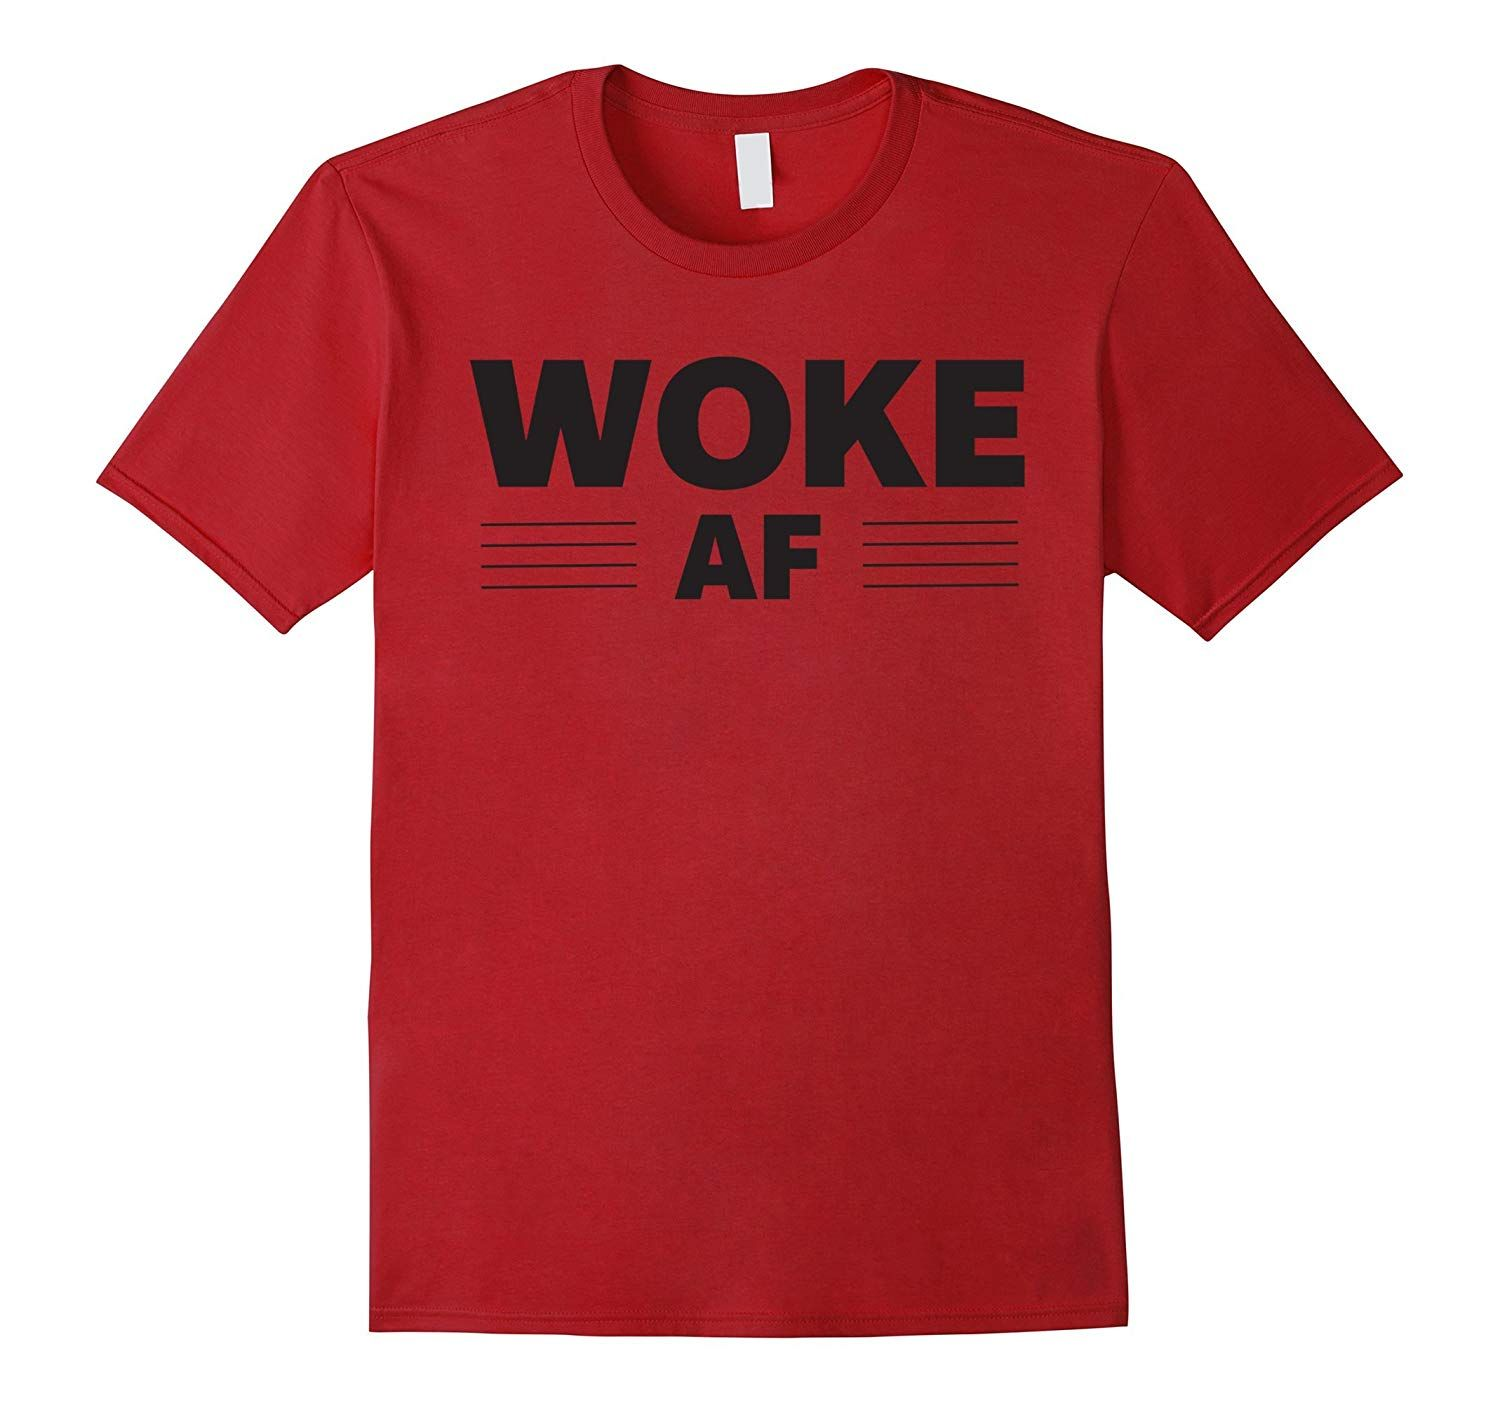 Woke Af T Shirt Products In 2019 Mens Tops Sports Shirts Men